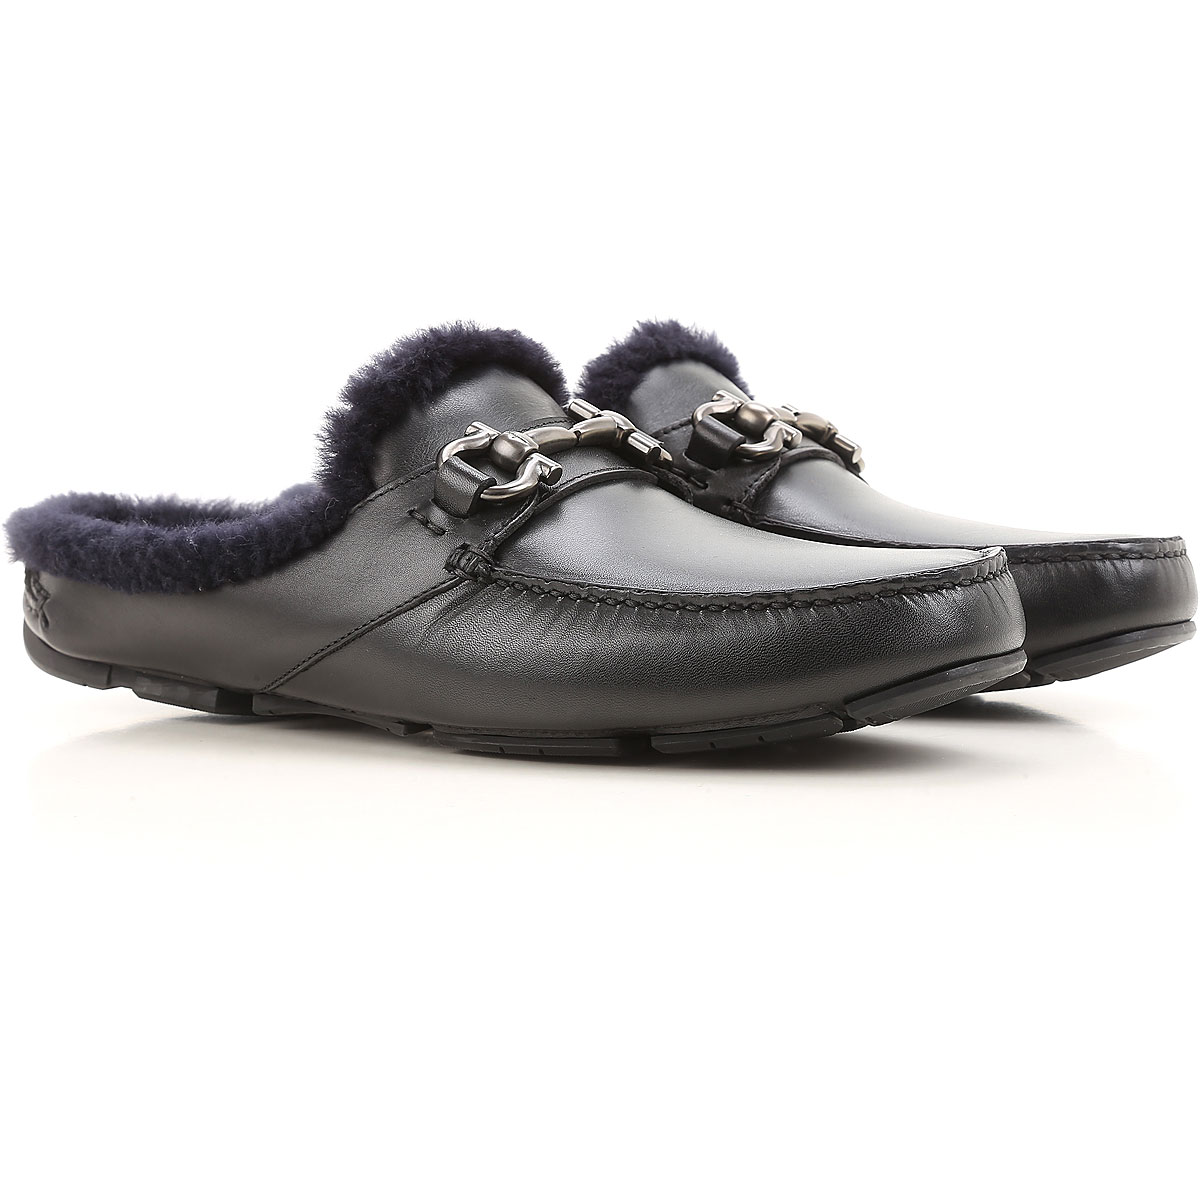 Salvatore Ferragamo Loafers for Men On Sale in Outlet, Black, Leather, 2019, 8 9